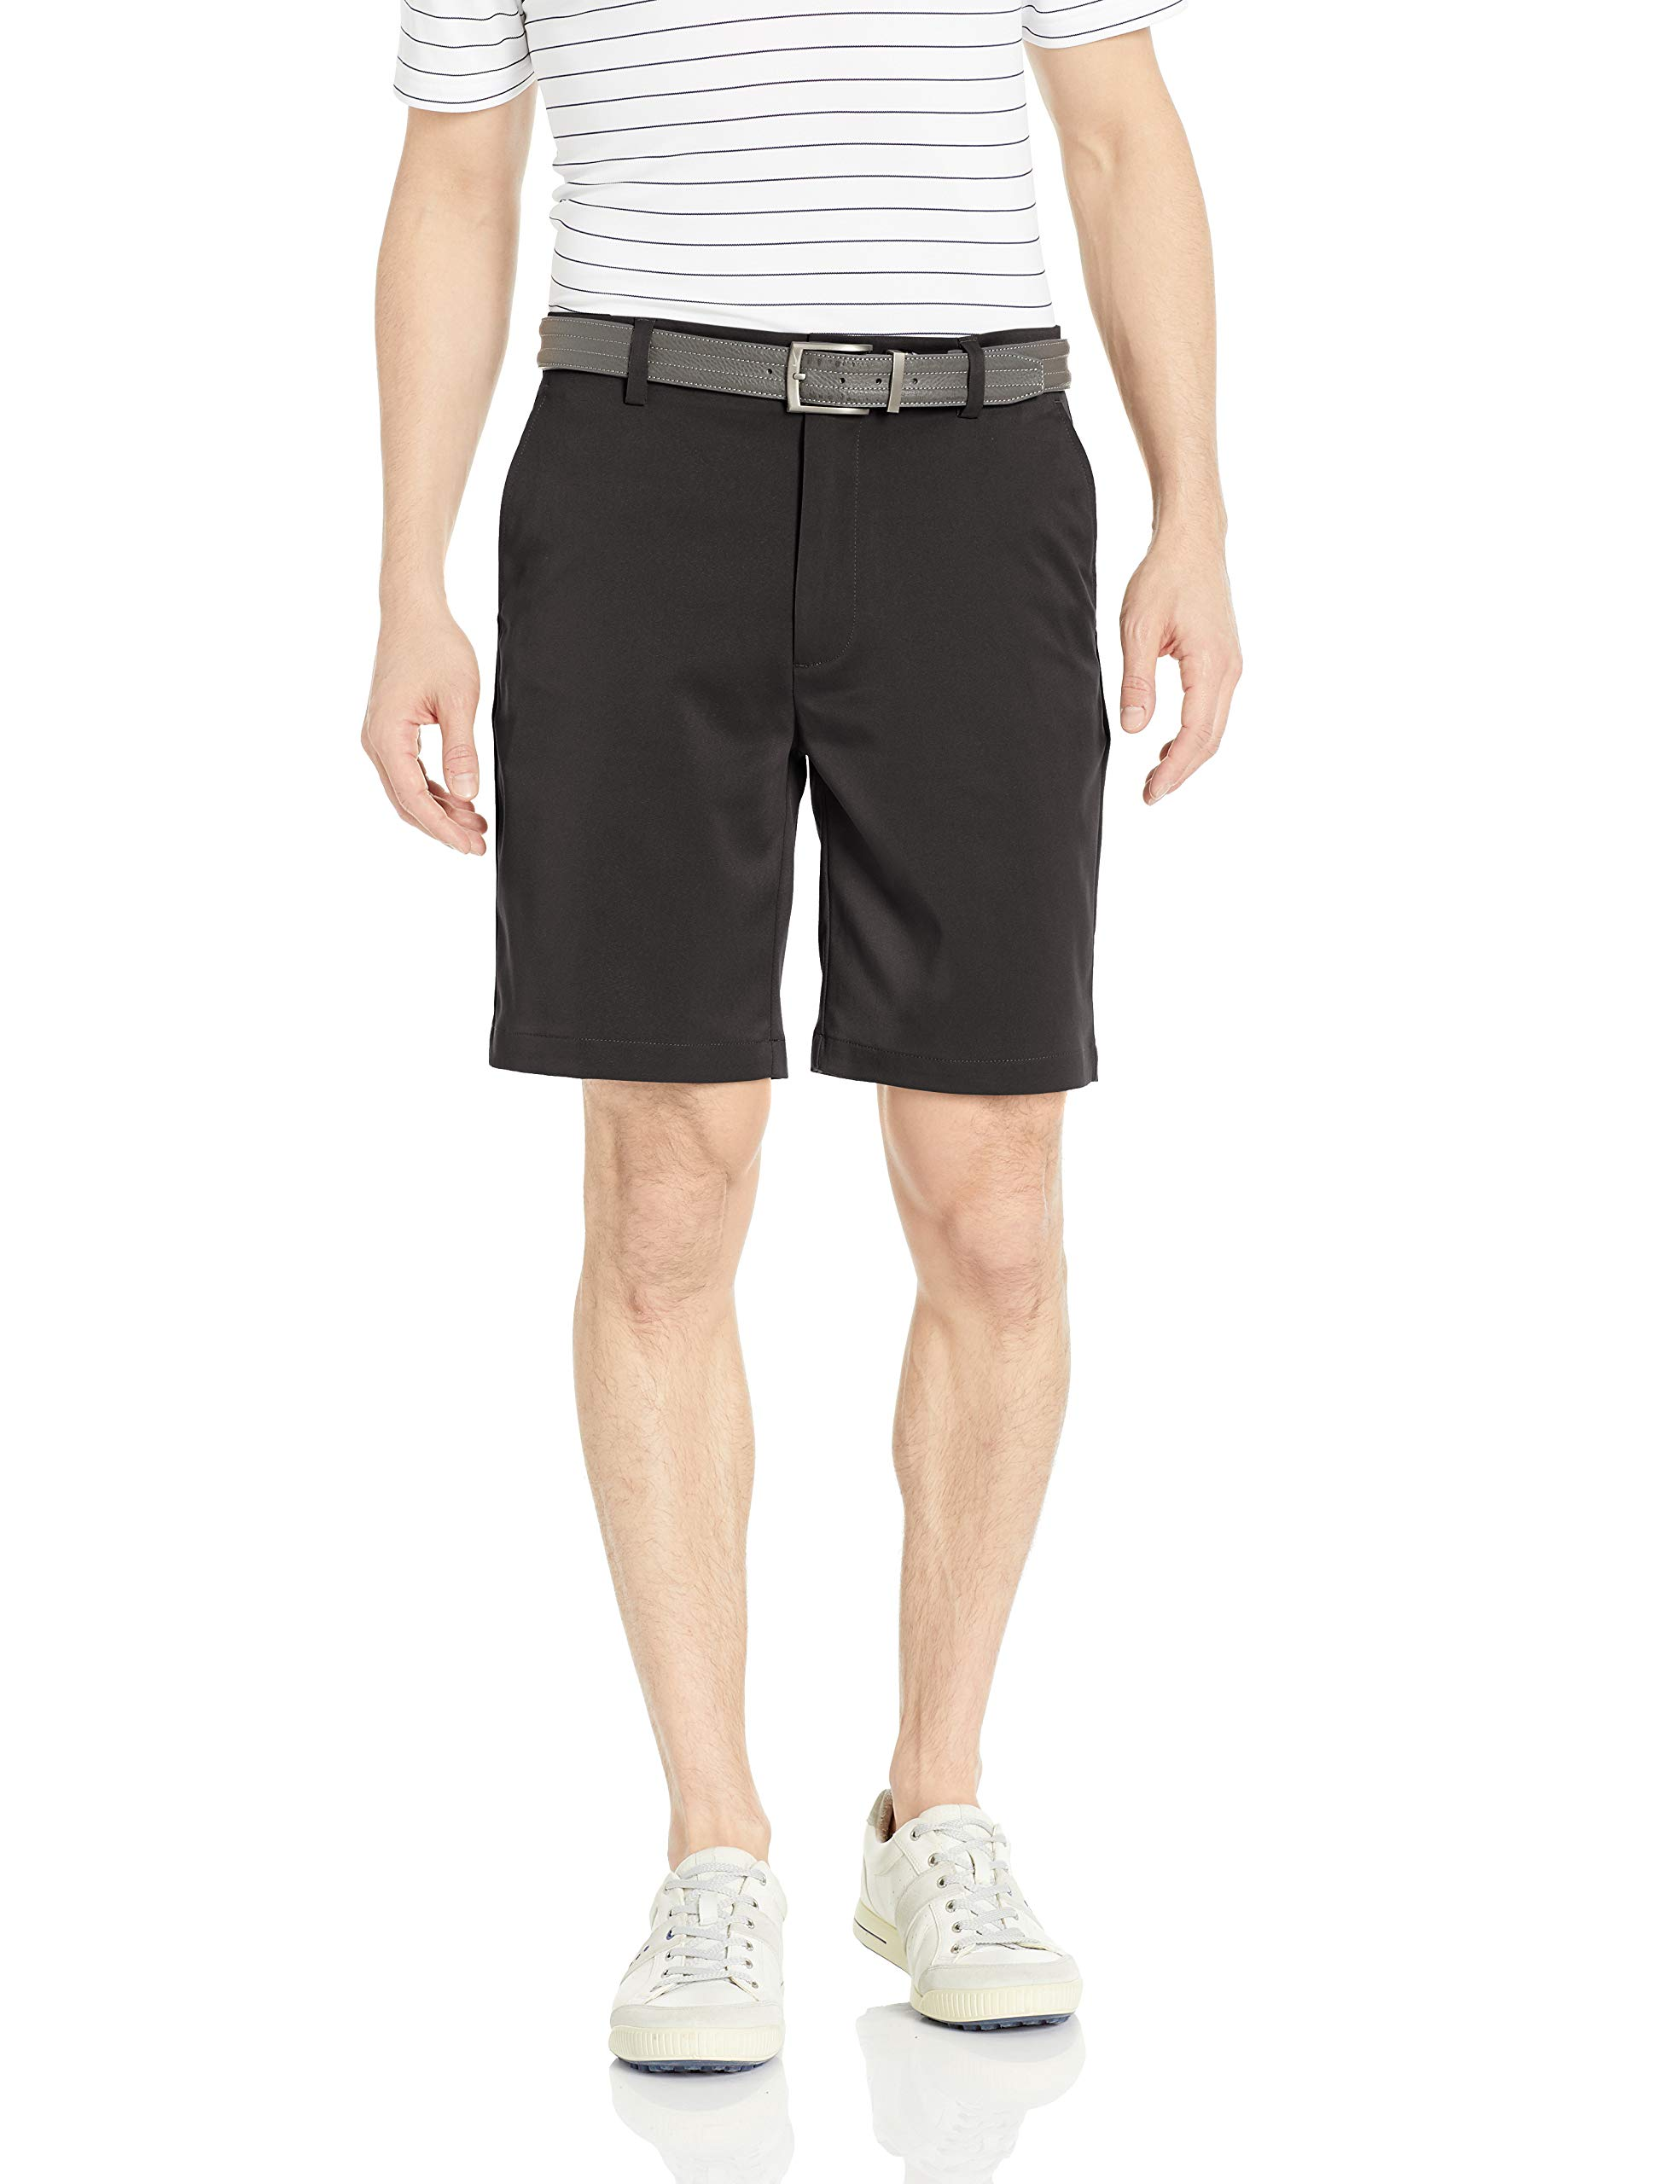 Amazon Essentials Men's Standard Classic-Fit Stretch Golf Short, Black, 34 by Amazon Essentials